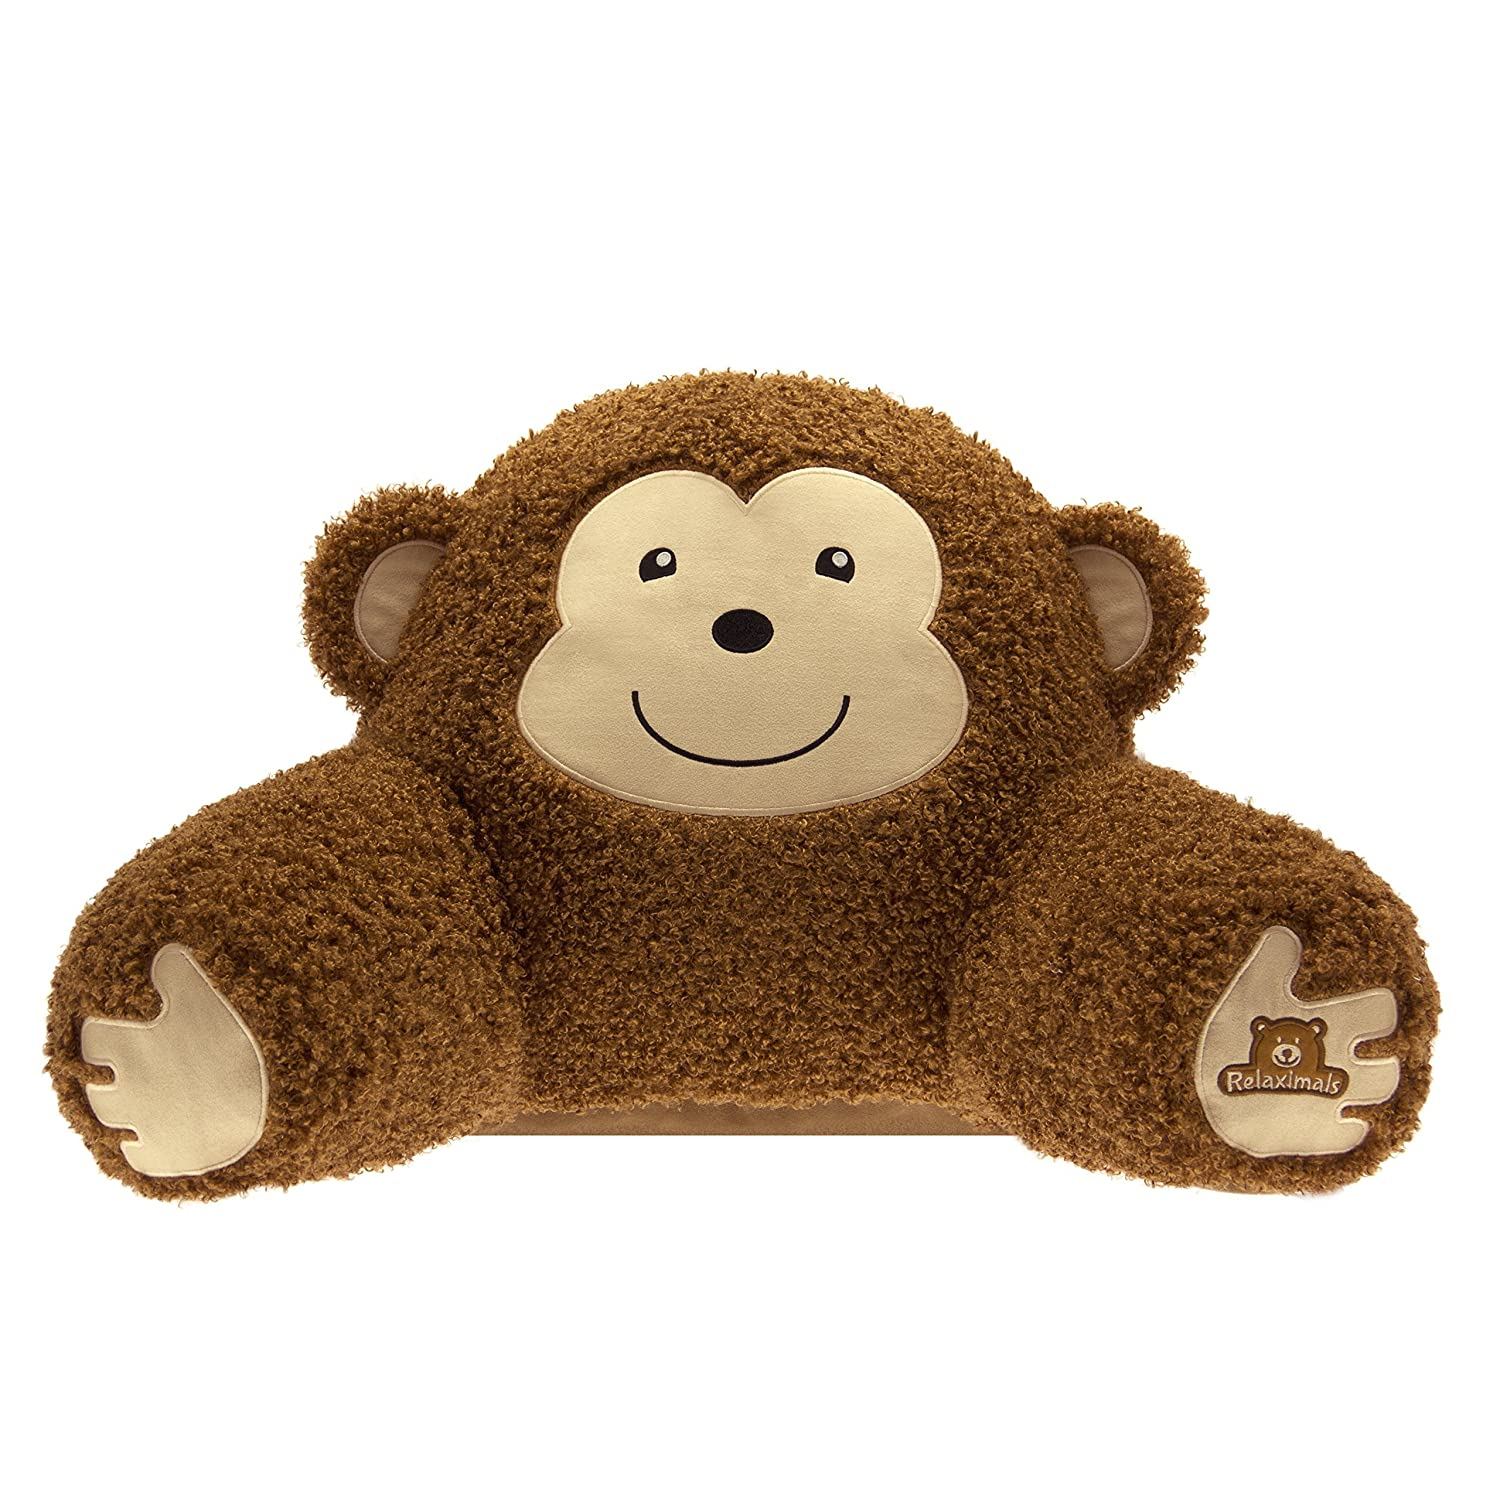 Relaximals Monkey Kids Reading Pillow